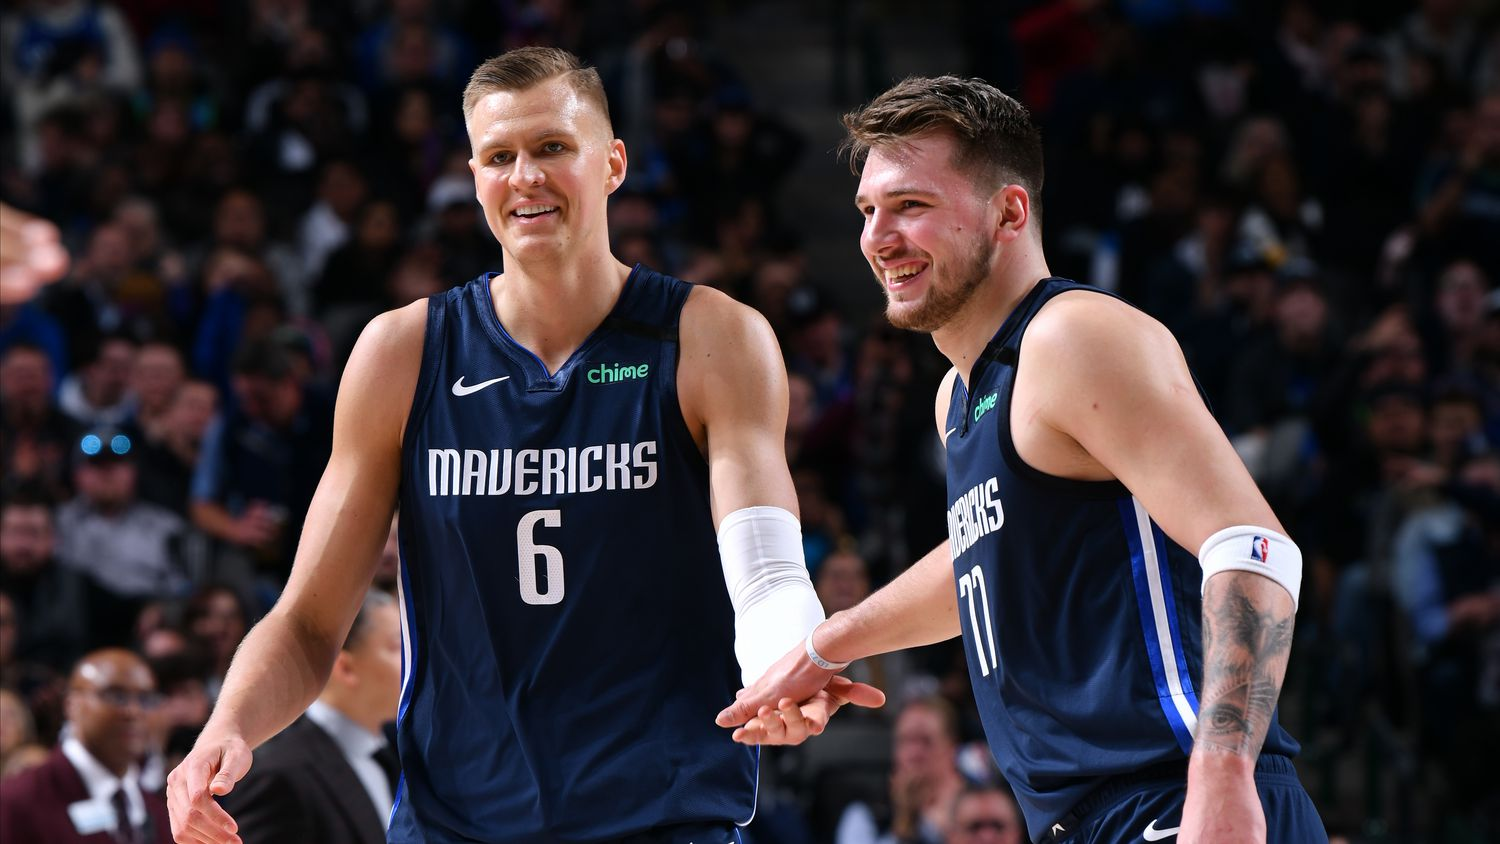 FILE — Kristaps Porzingis #6 and Luka Doncic #77 of the Dallas Mavericks January 21, 2020 at the American Airlines Center in Dallas, Texas. Doncic and Porzingis' on-court interactions, or lack thereof, have been apprehensively tracked by Mavs fans in recent weeks.